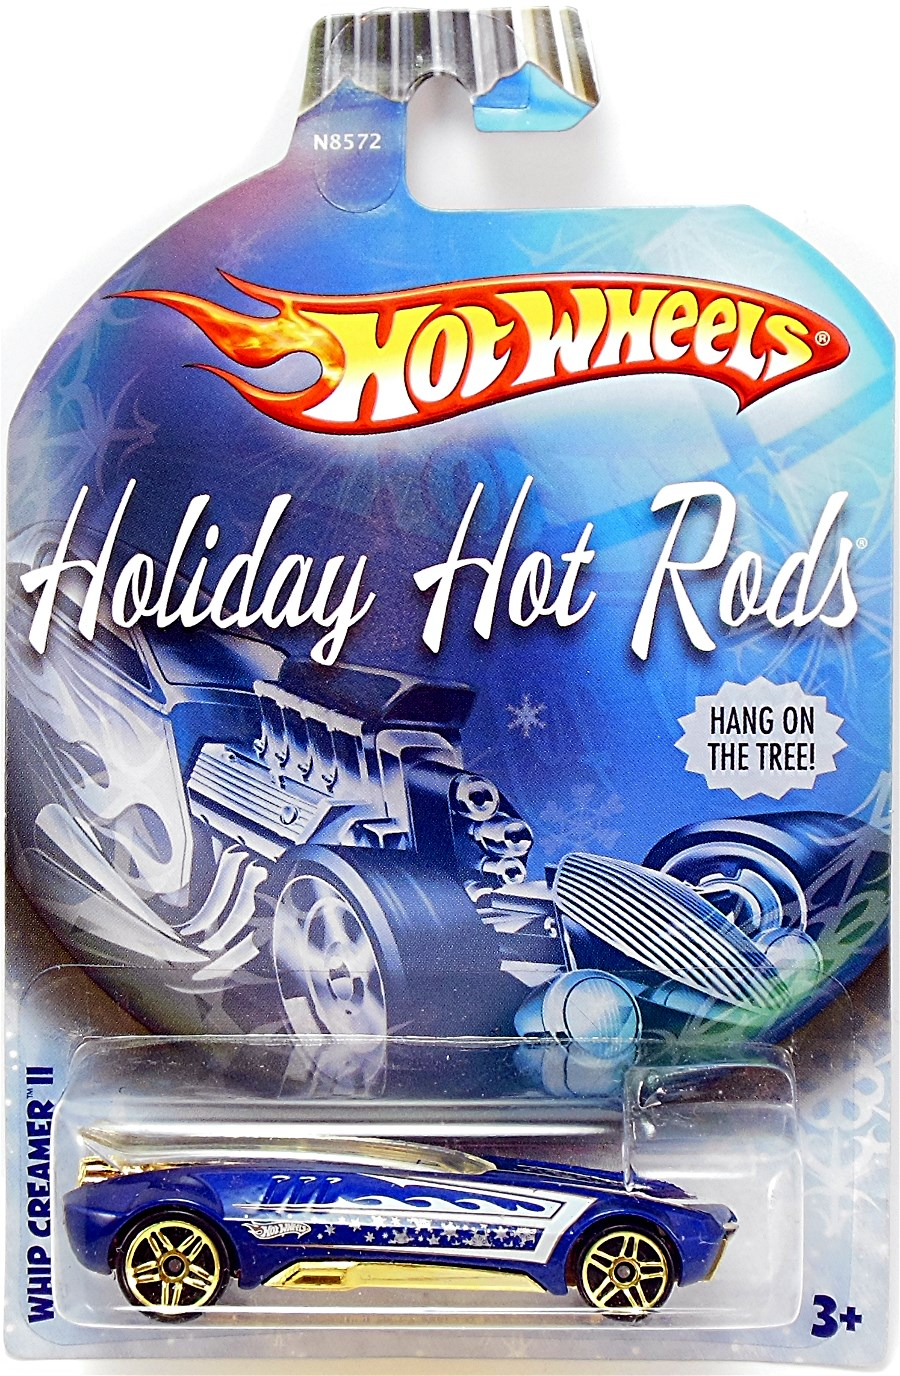 2009 Holiday Hot Rods Hot Wheels Newsletter